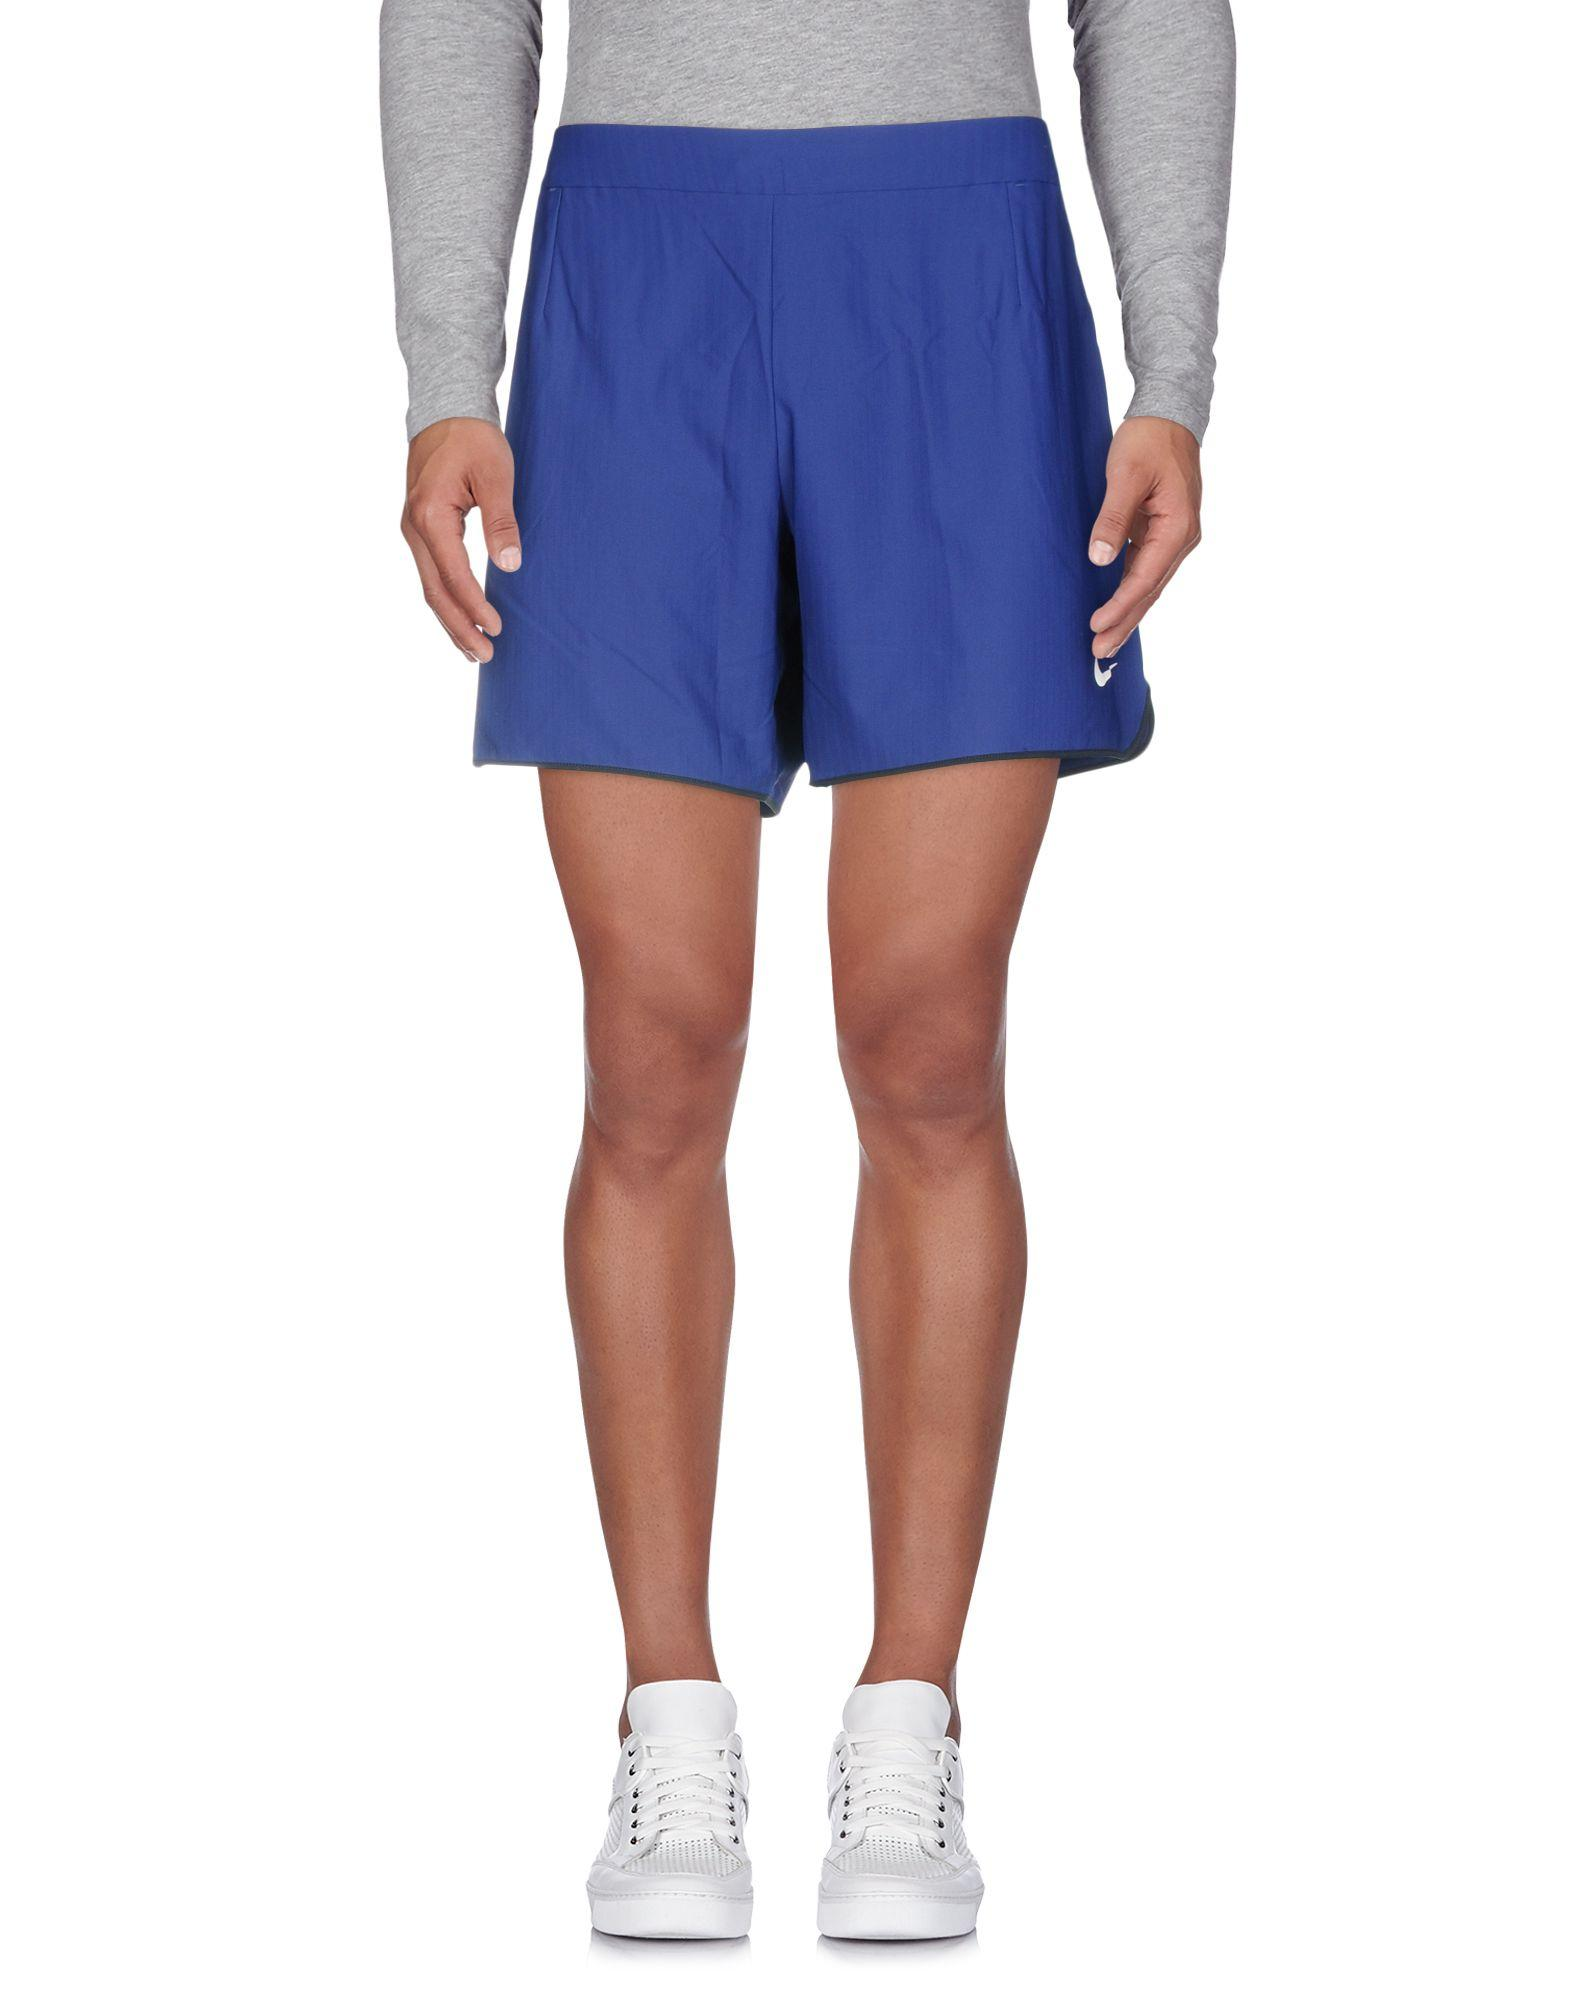 Nike Shorts In Bright Blue